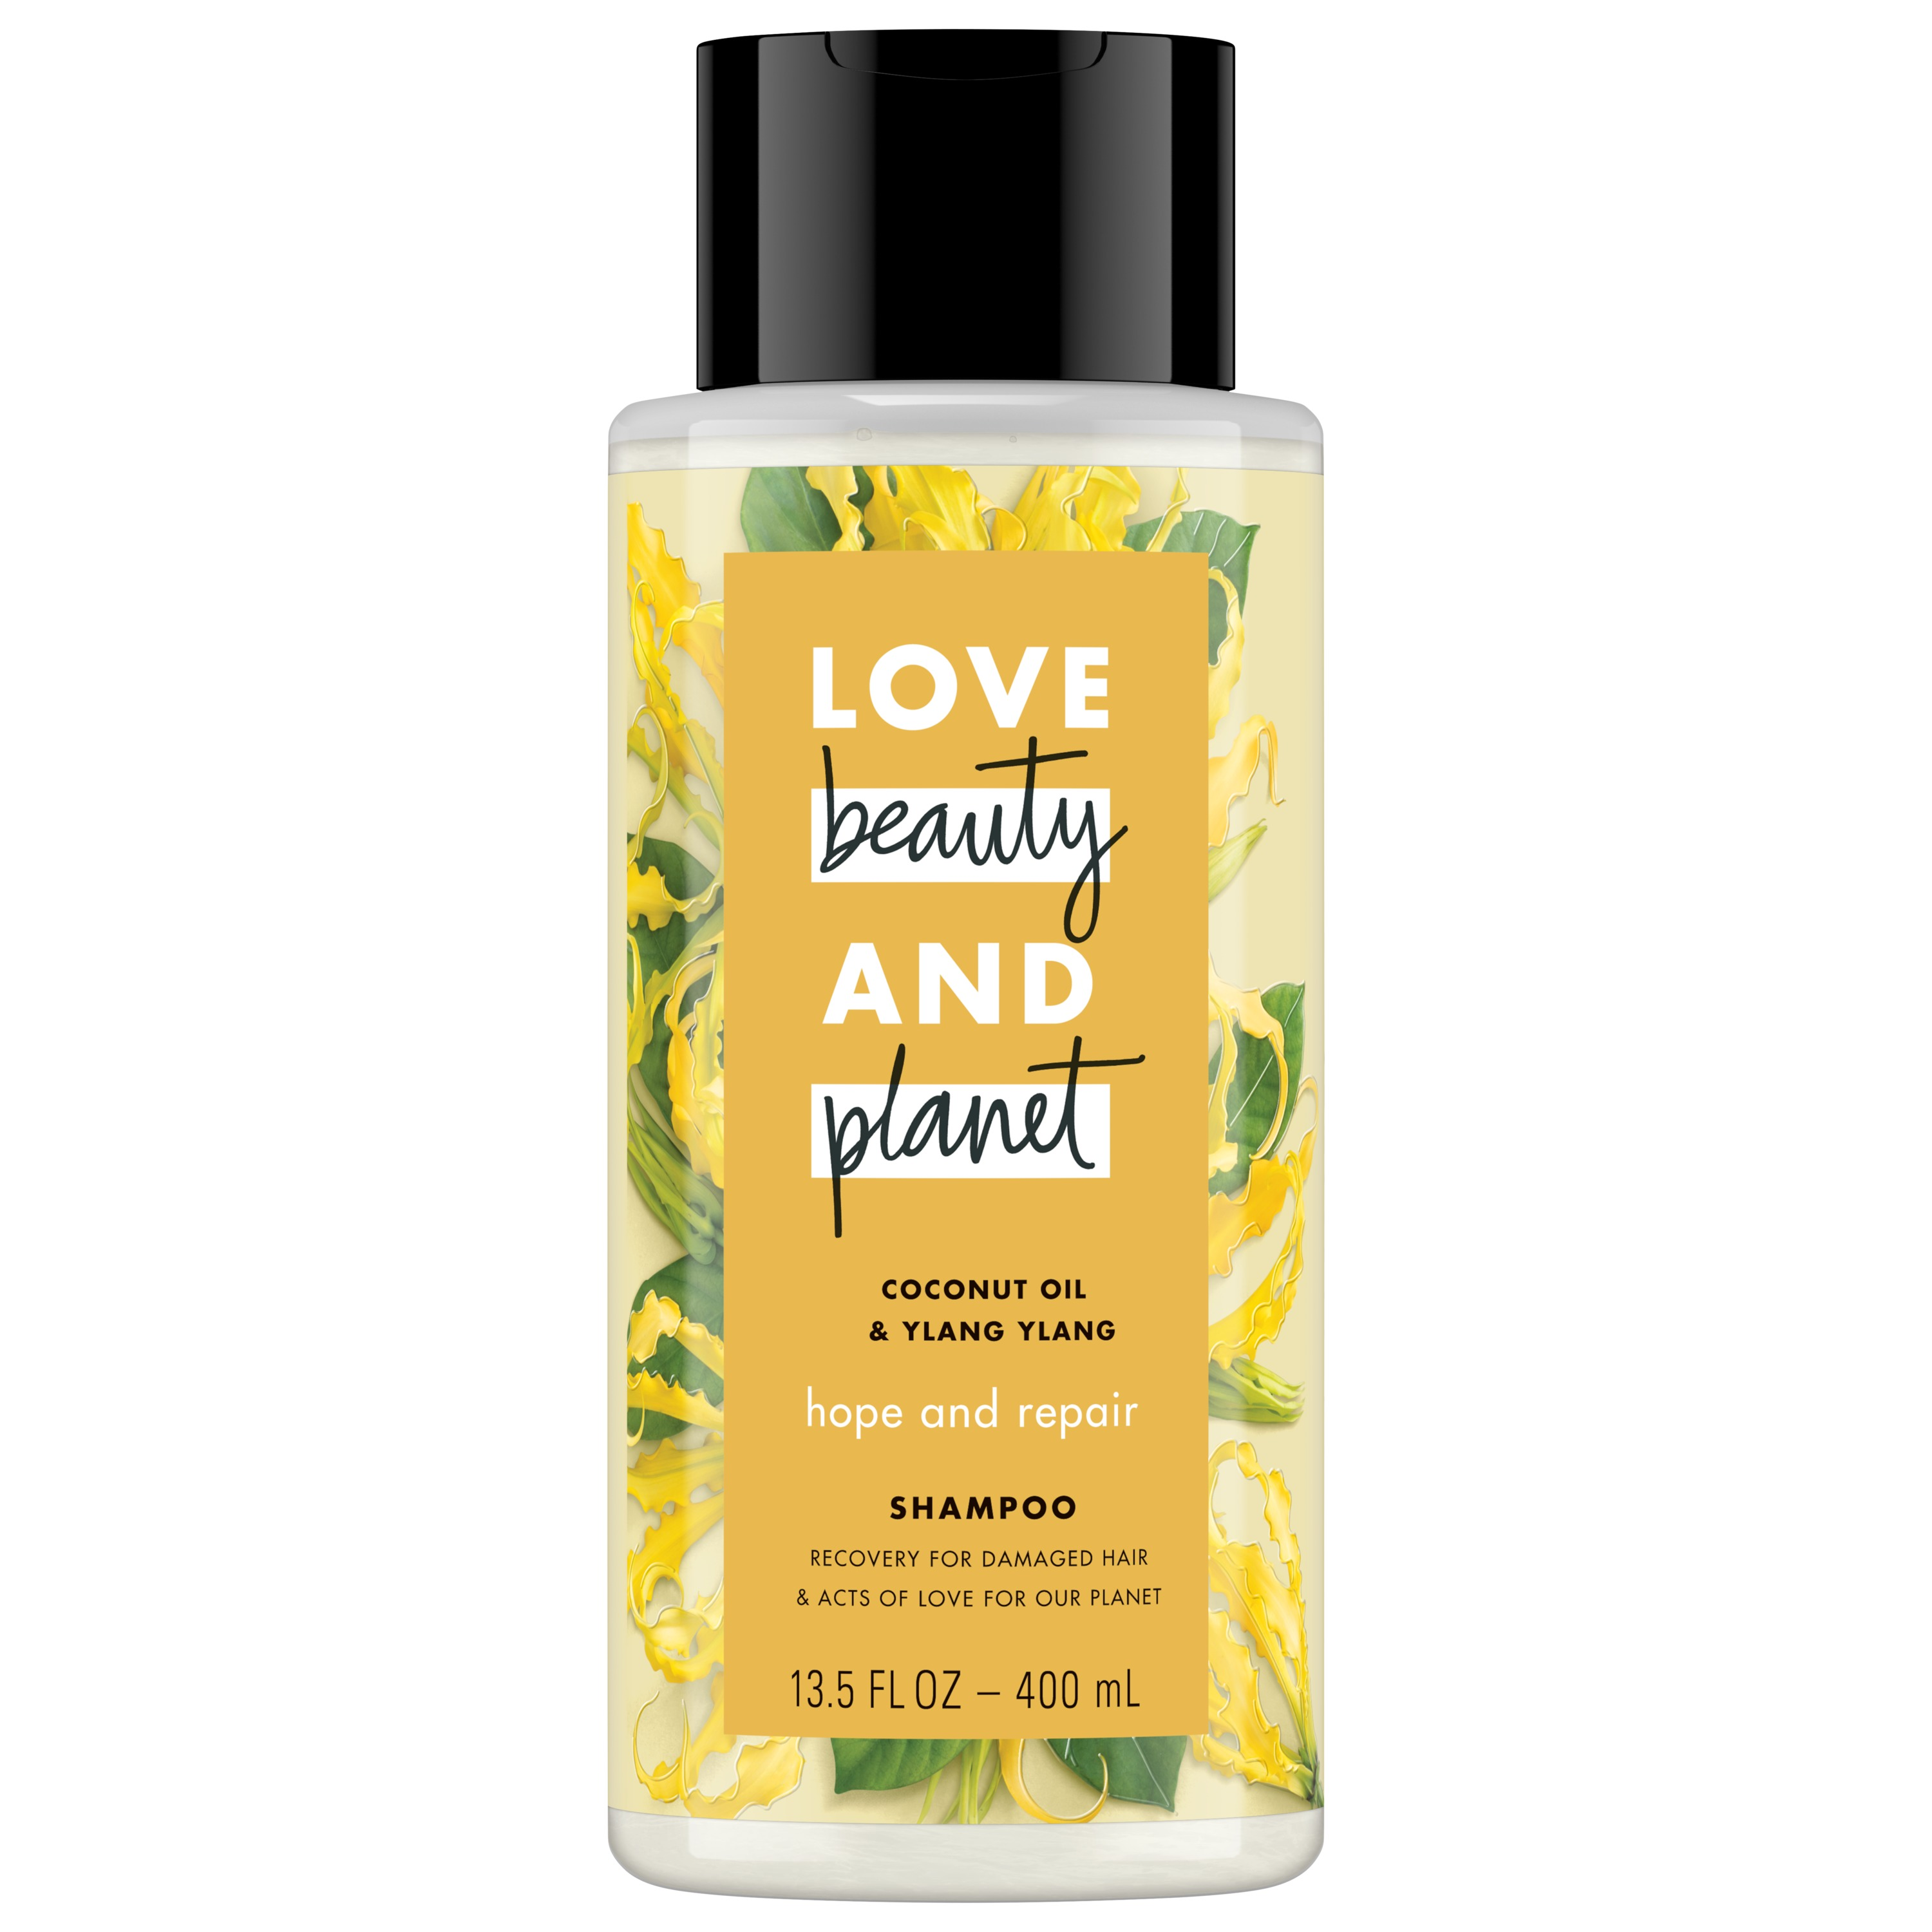 Love Beauty And Planet Hope and Repair Shampoo for Split Ends, Coconut Oil & Ylang Ylang 13.5 oz